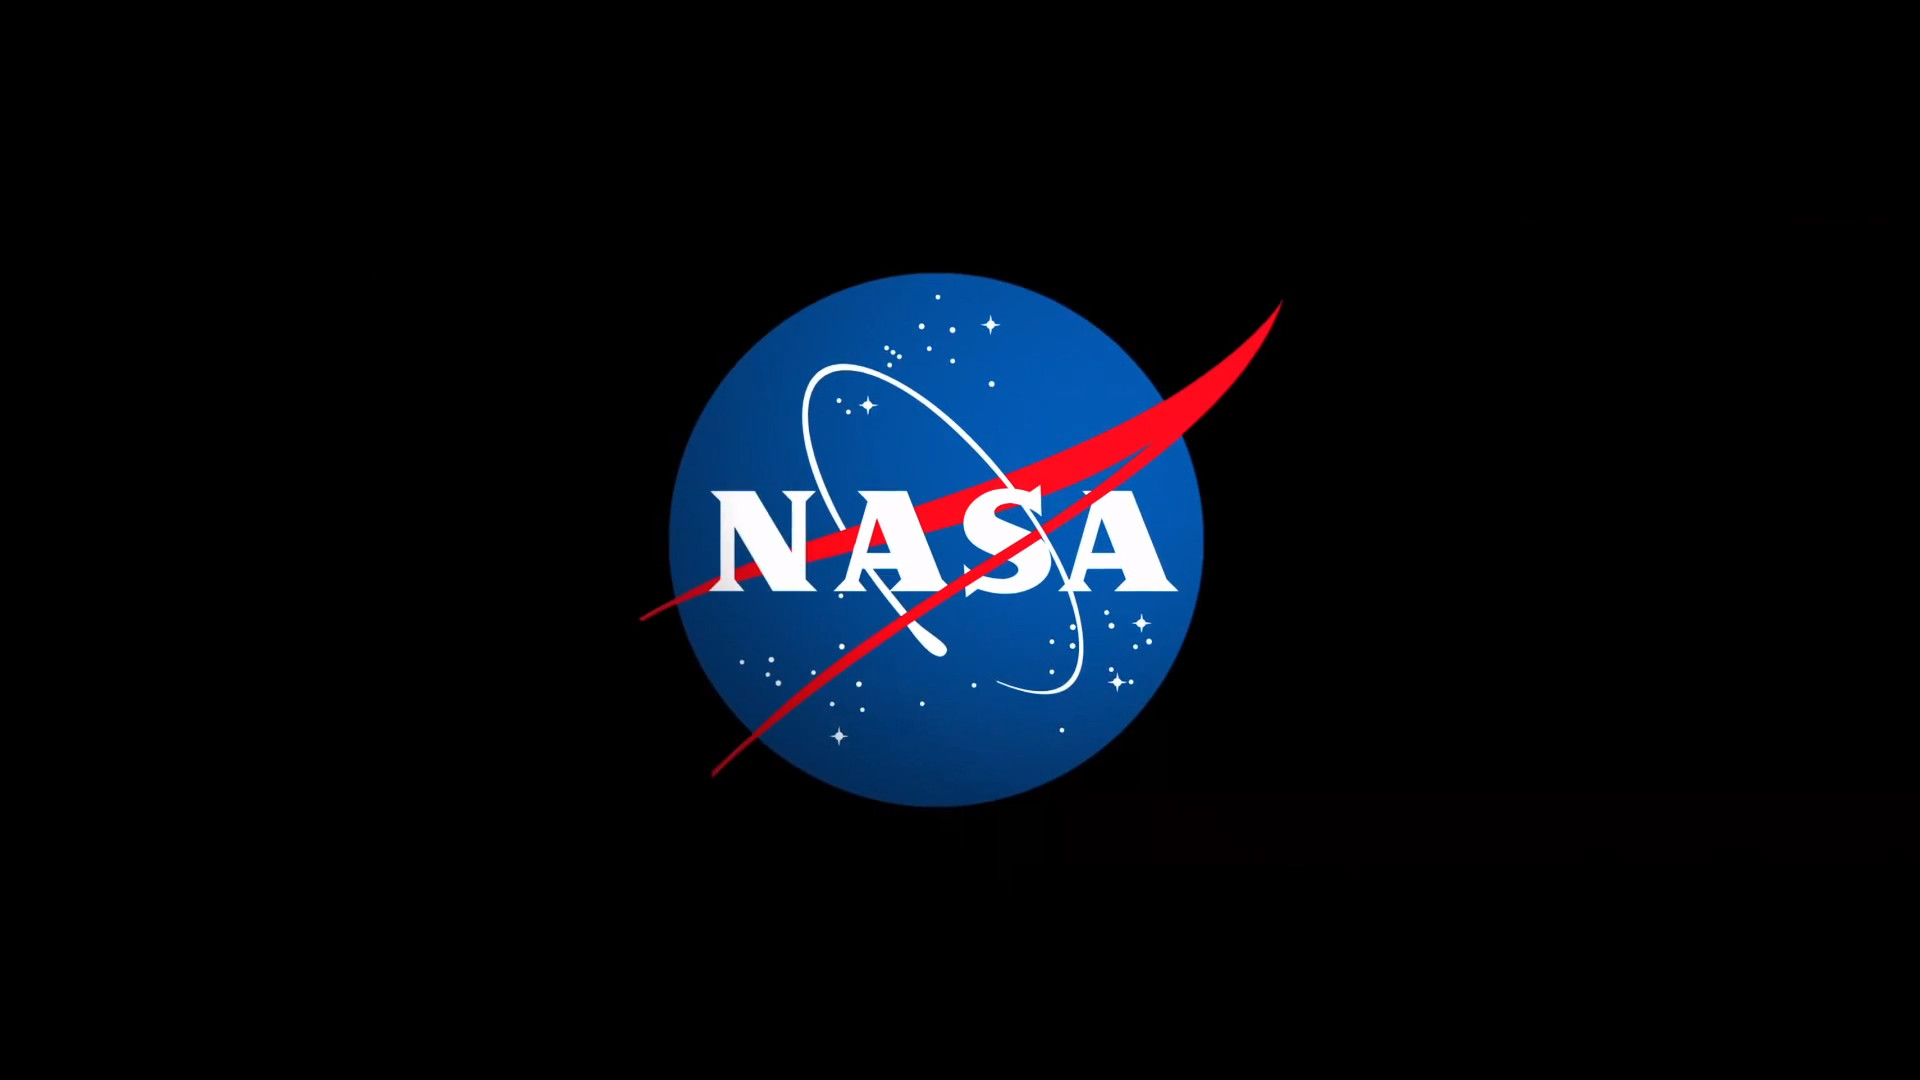 1920x1080 nasa hd wallpaper nasa hd wallpaper gallery